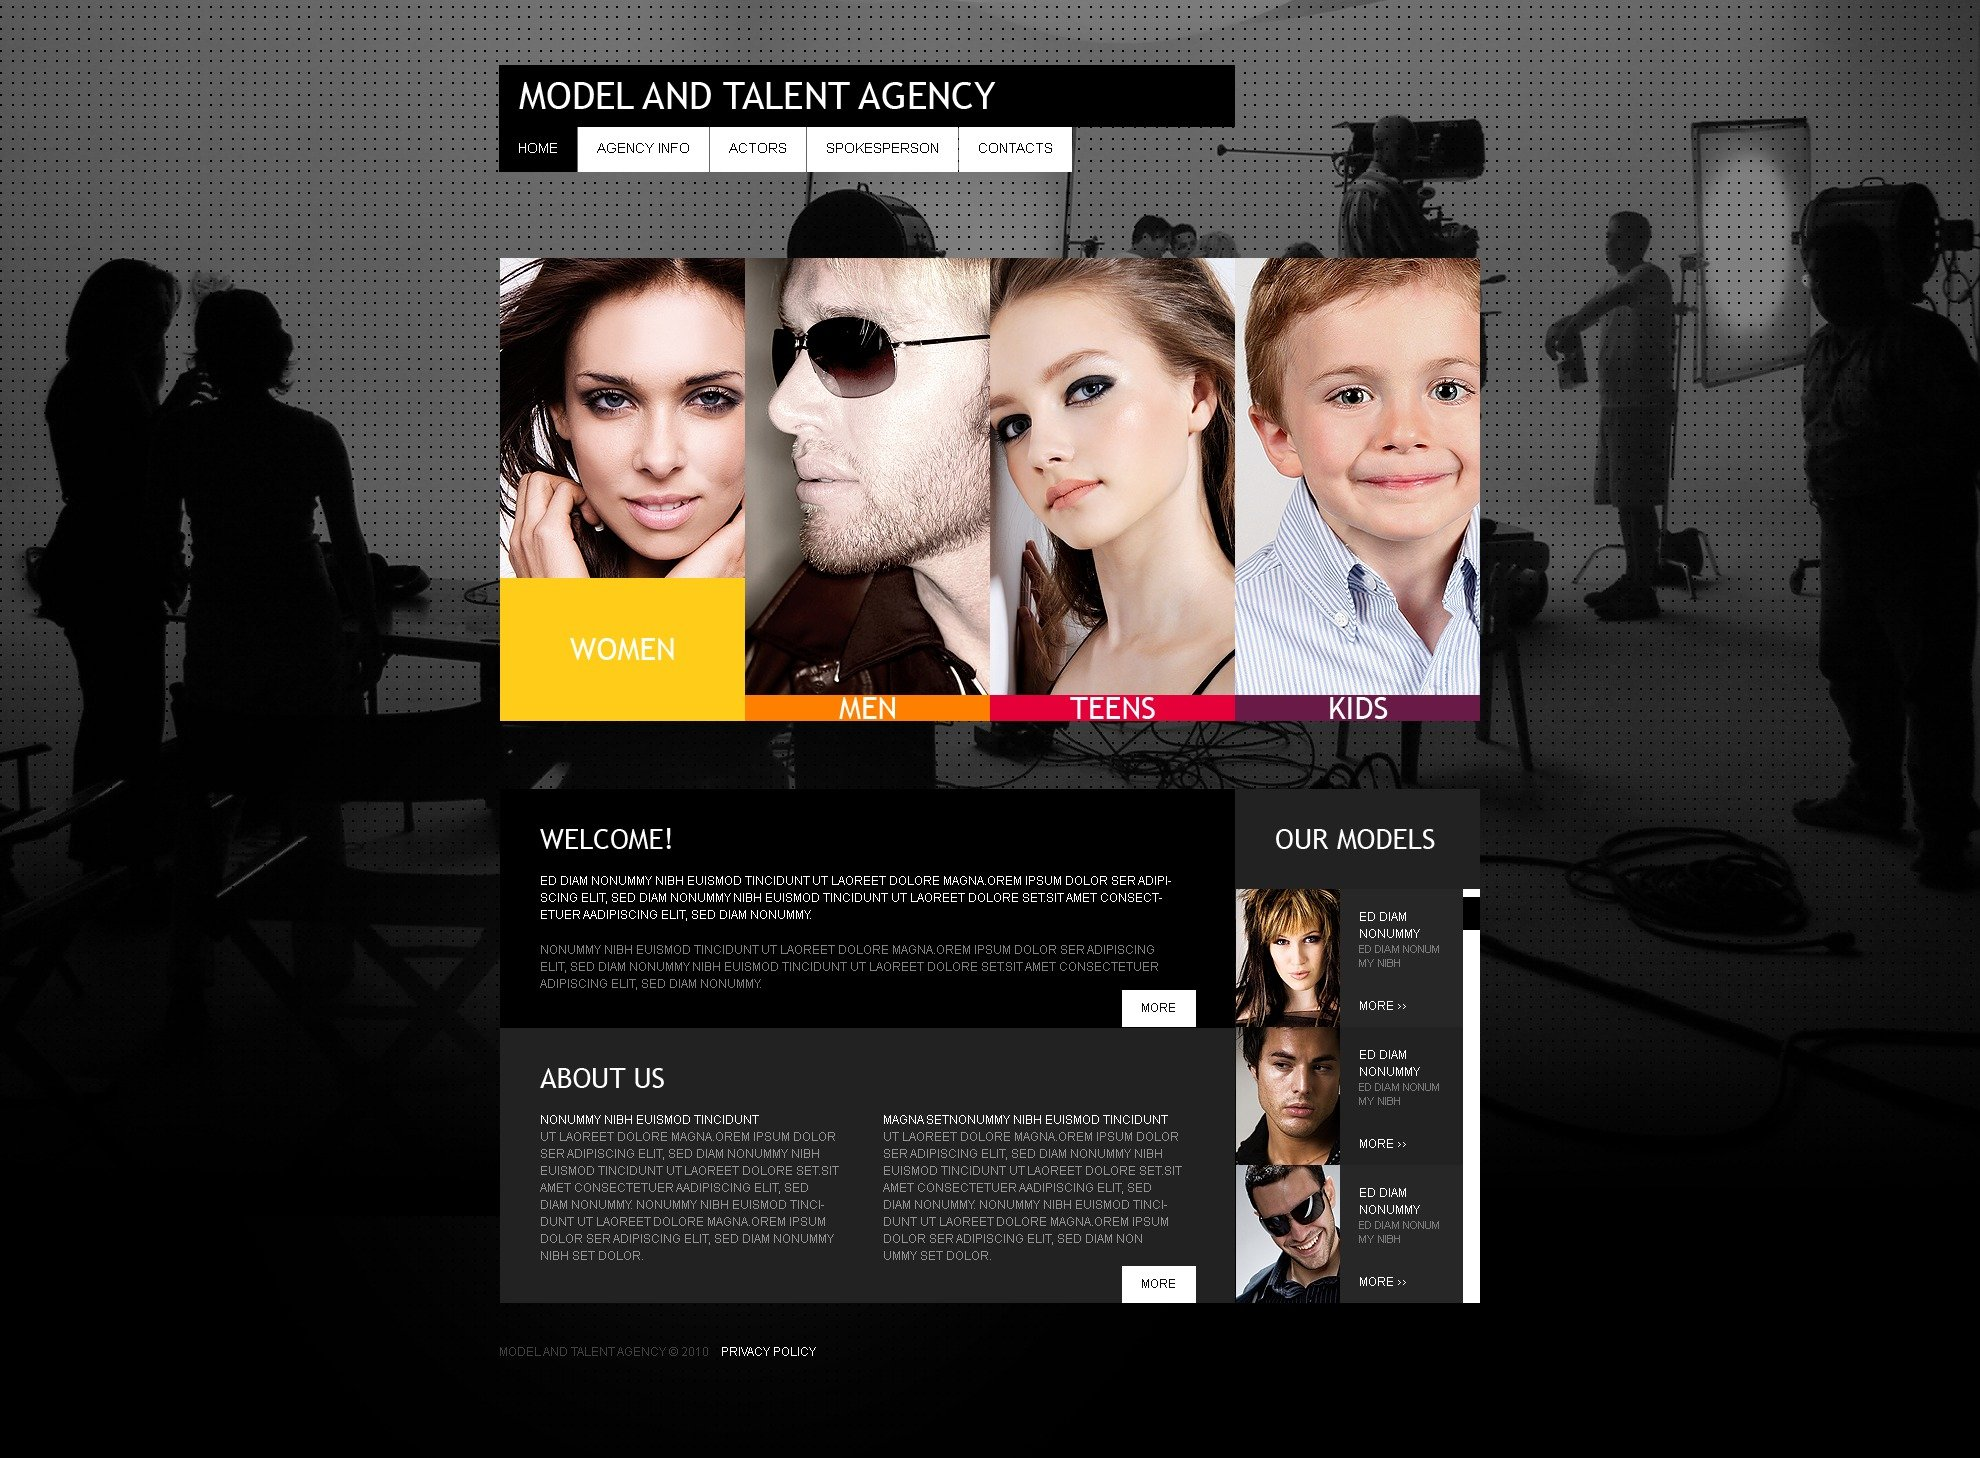 The Models Talent Agency PSD Design 54220, one of the best PSD templates of its kind (fashion, most popular, wide, jquery), also known as models talent agency PSD template, model's PSD template, portfolio agency PSD template, fashion PSD template, style PSD template, photos PSD template, models PSD template, women PSD template, men PSD template, children PSD template, partners PSD template, catalogue PSD template, success career PSD template, job  casting PSD template, audition PSD template, catwalk PSD template, podium PSD template, walk PSD template, clothes PSD template, photo PSD template, session PSD template, shows PSD template, beauty PSD template, D.Shepard and related with models talent agency, model's, portfolio agency, fashion, style, photos, models, women, men, children, partners, catalogue, success career, job  casting, audition, catwalk, podium, walk, clothes, photo, session, shows, beauty, D.Shepard, etc.